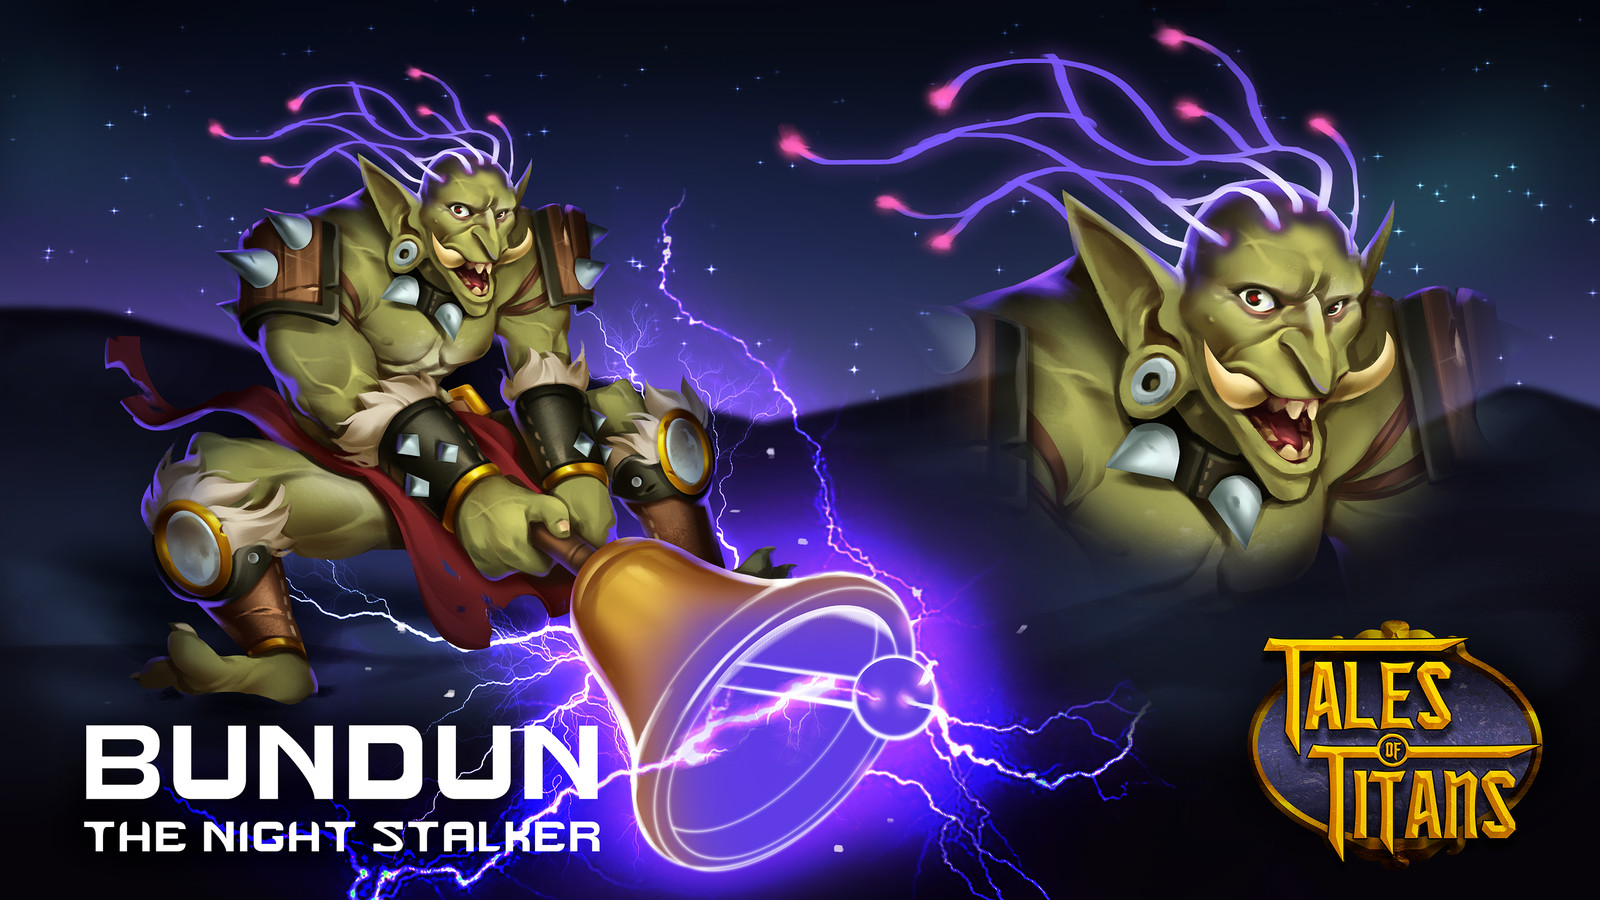 Tales of Titans - BUNDUN: THE NIGHT STALKER